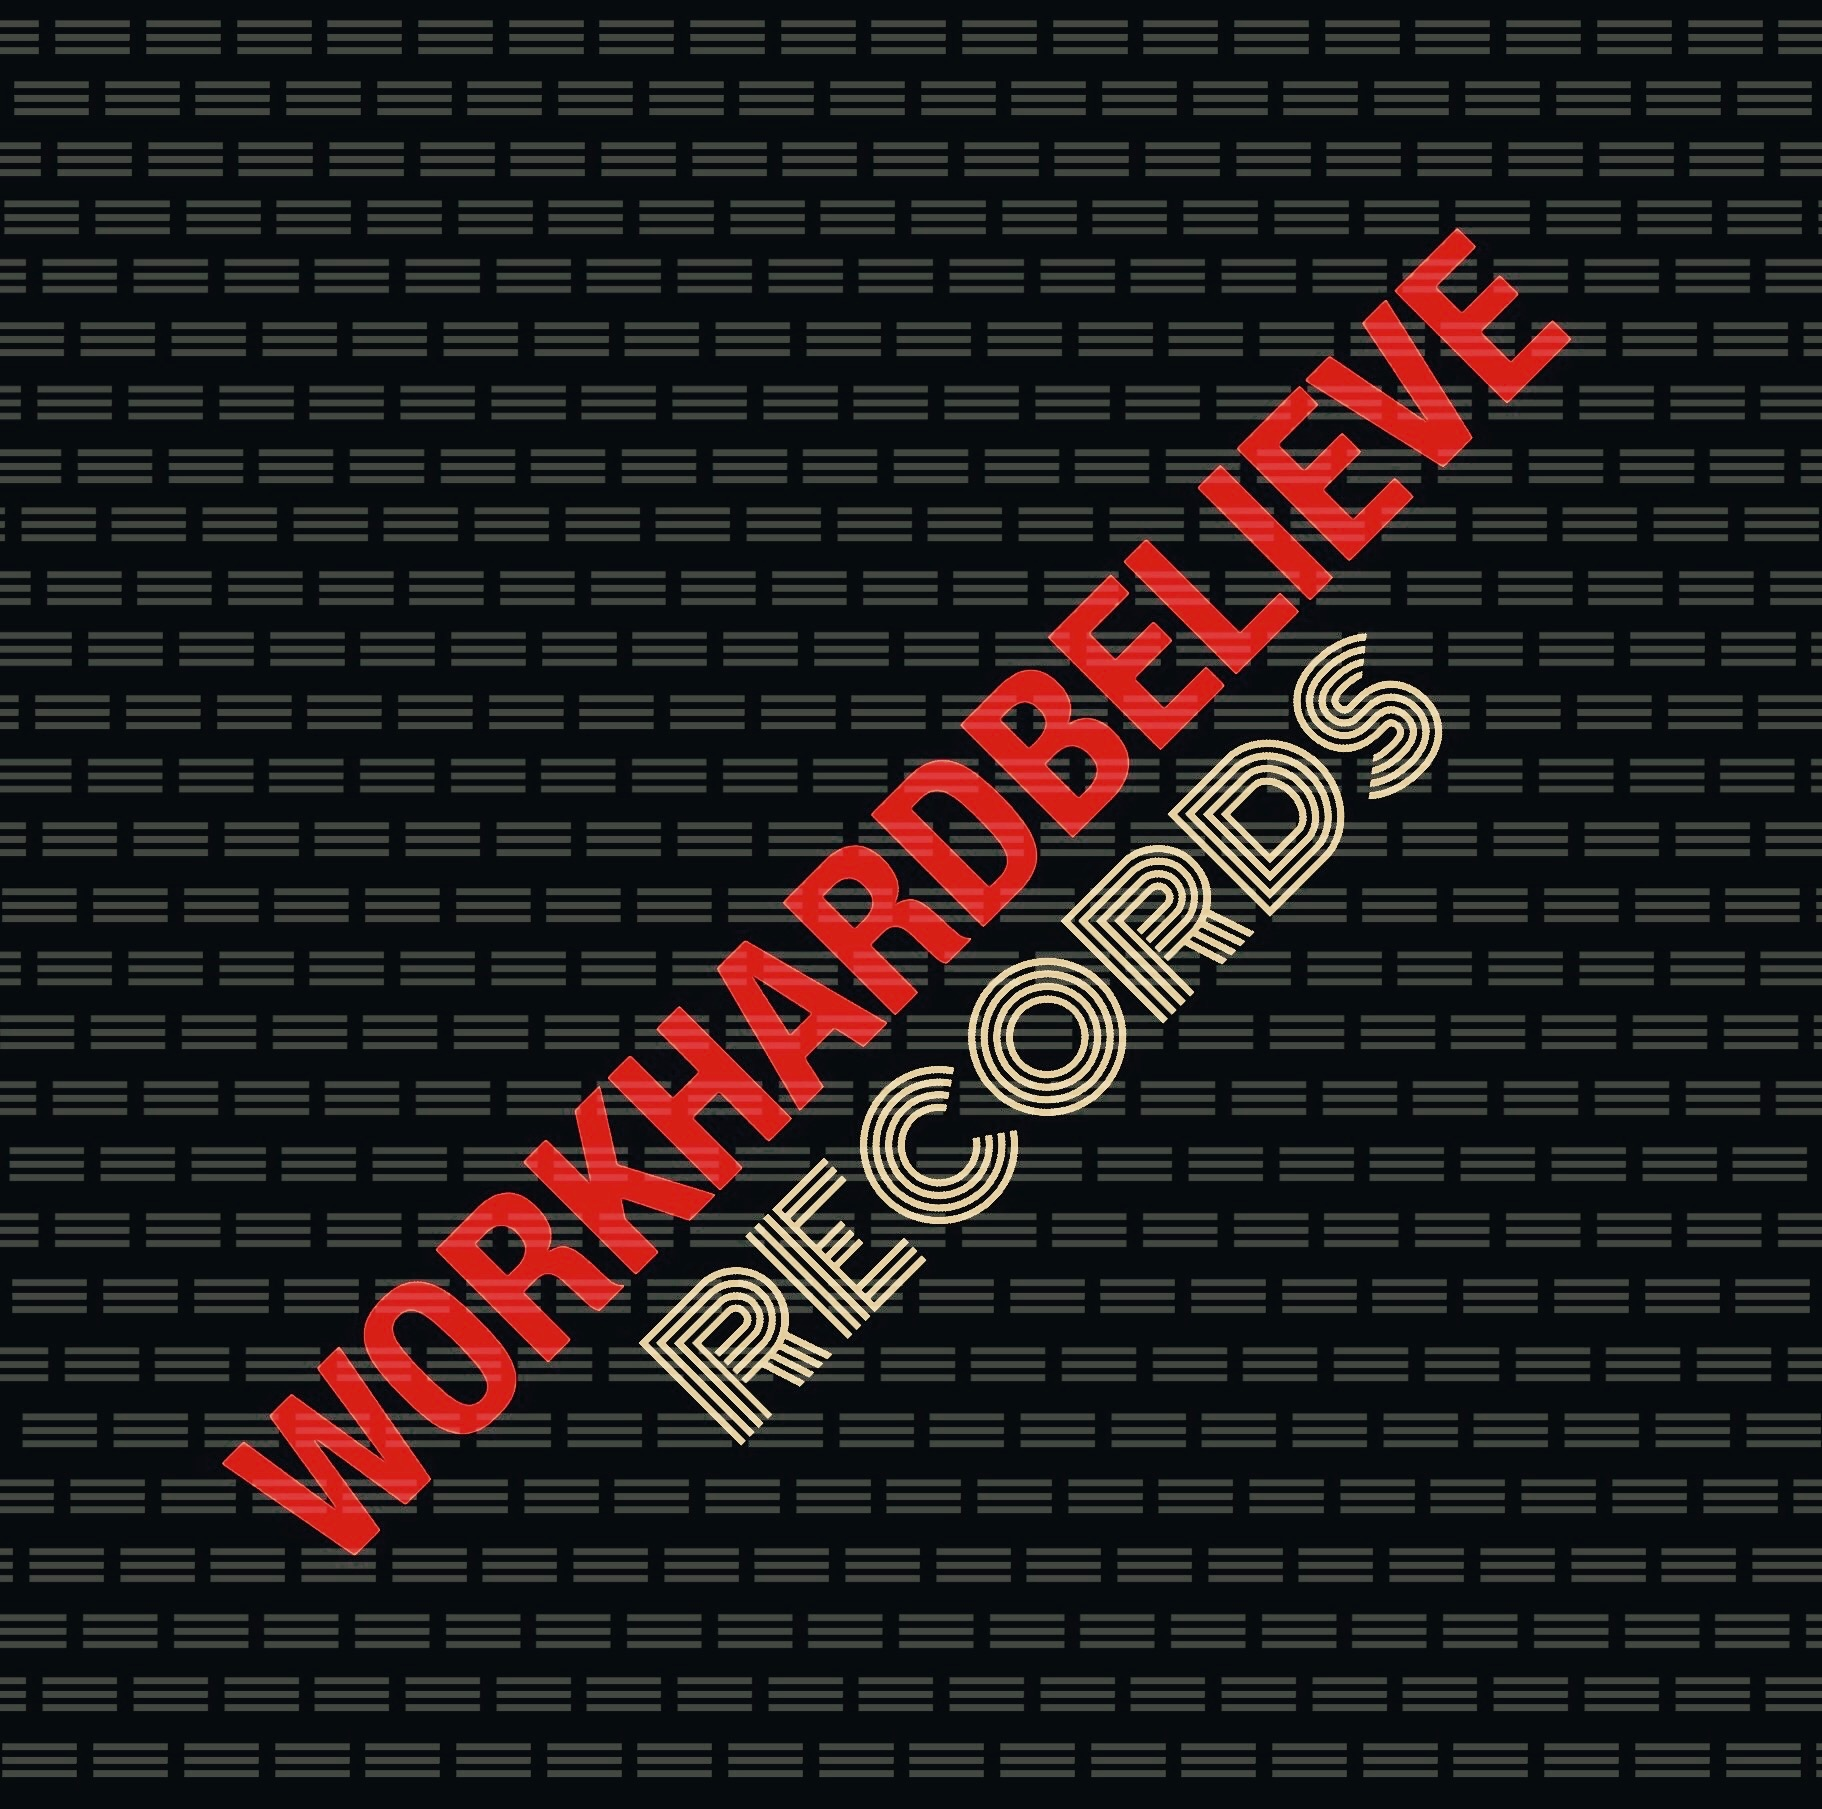 workhardbelieve records logo.jpeg